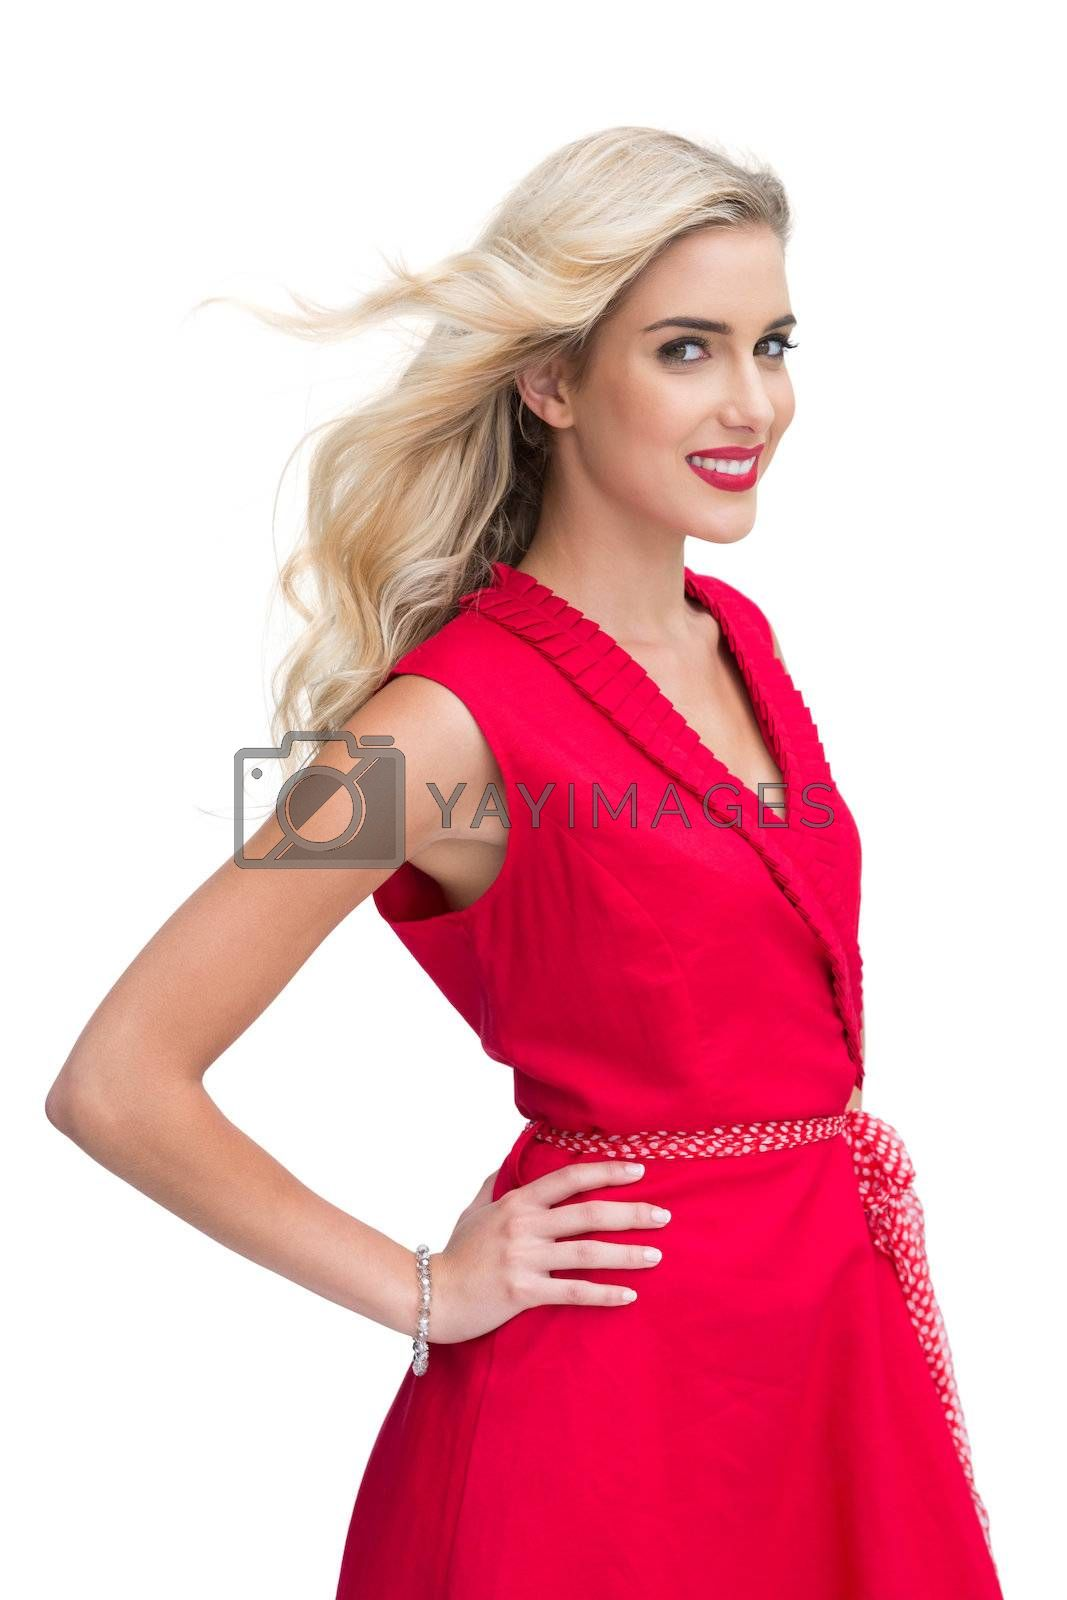 Beautiful woman wearing red dress smiling at camera by Wavebreakmedia